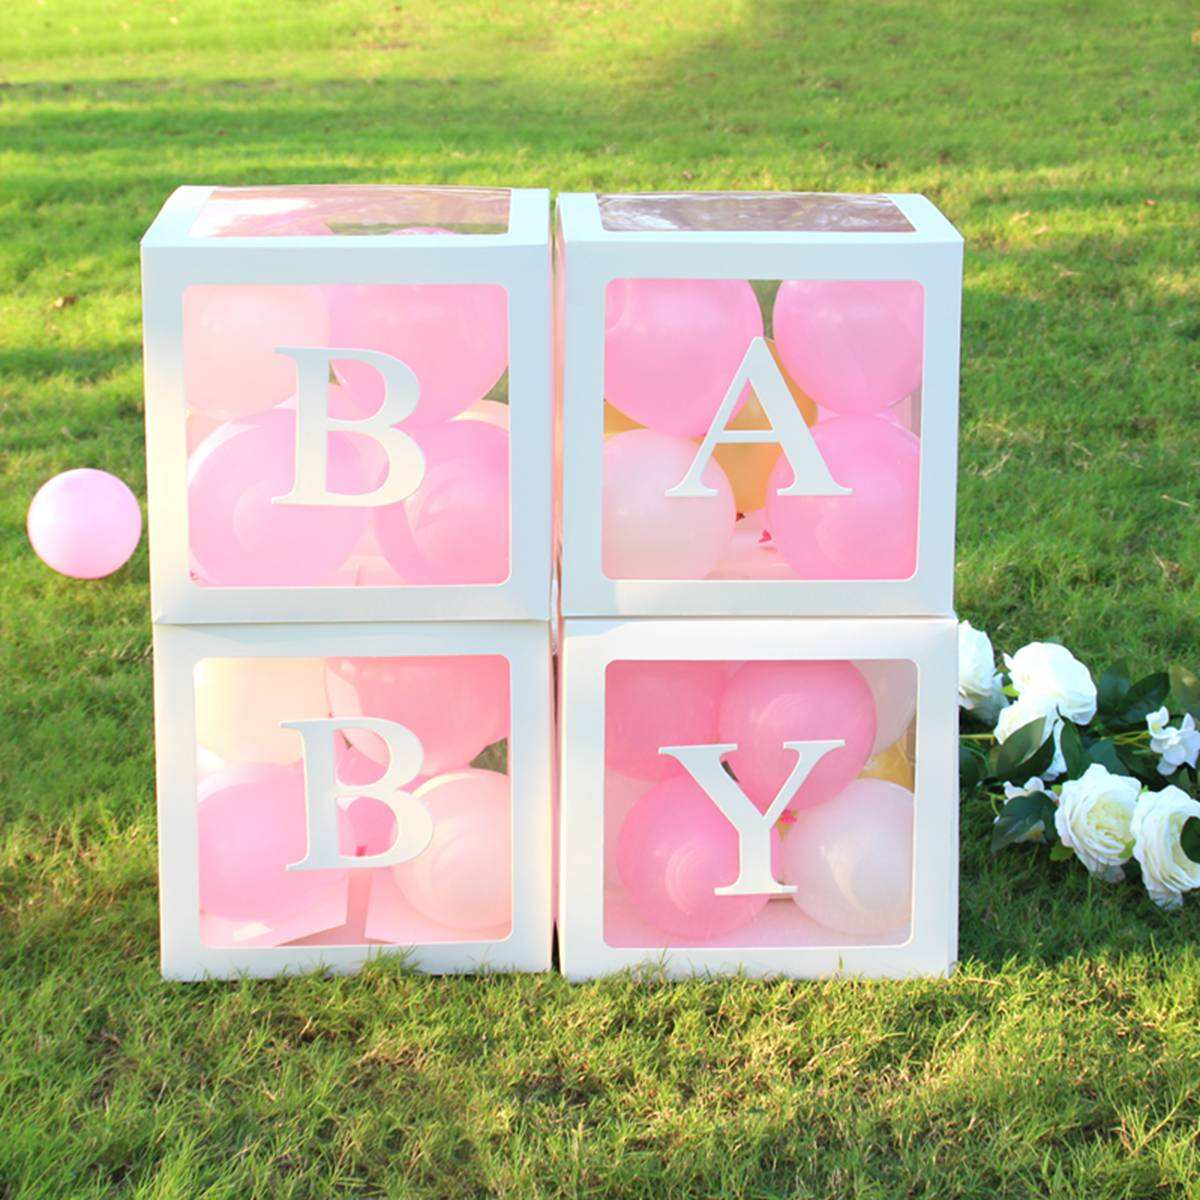 Baby Shower Favors Gender Reveal Boys Girls Birthday Party Favors Gift Event Party Supplies Baby Blocks Baby Shower Boxes